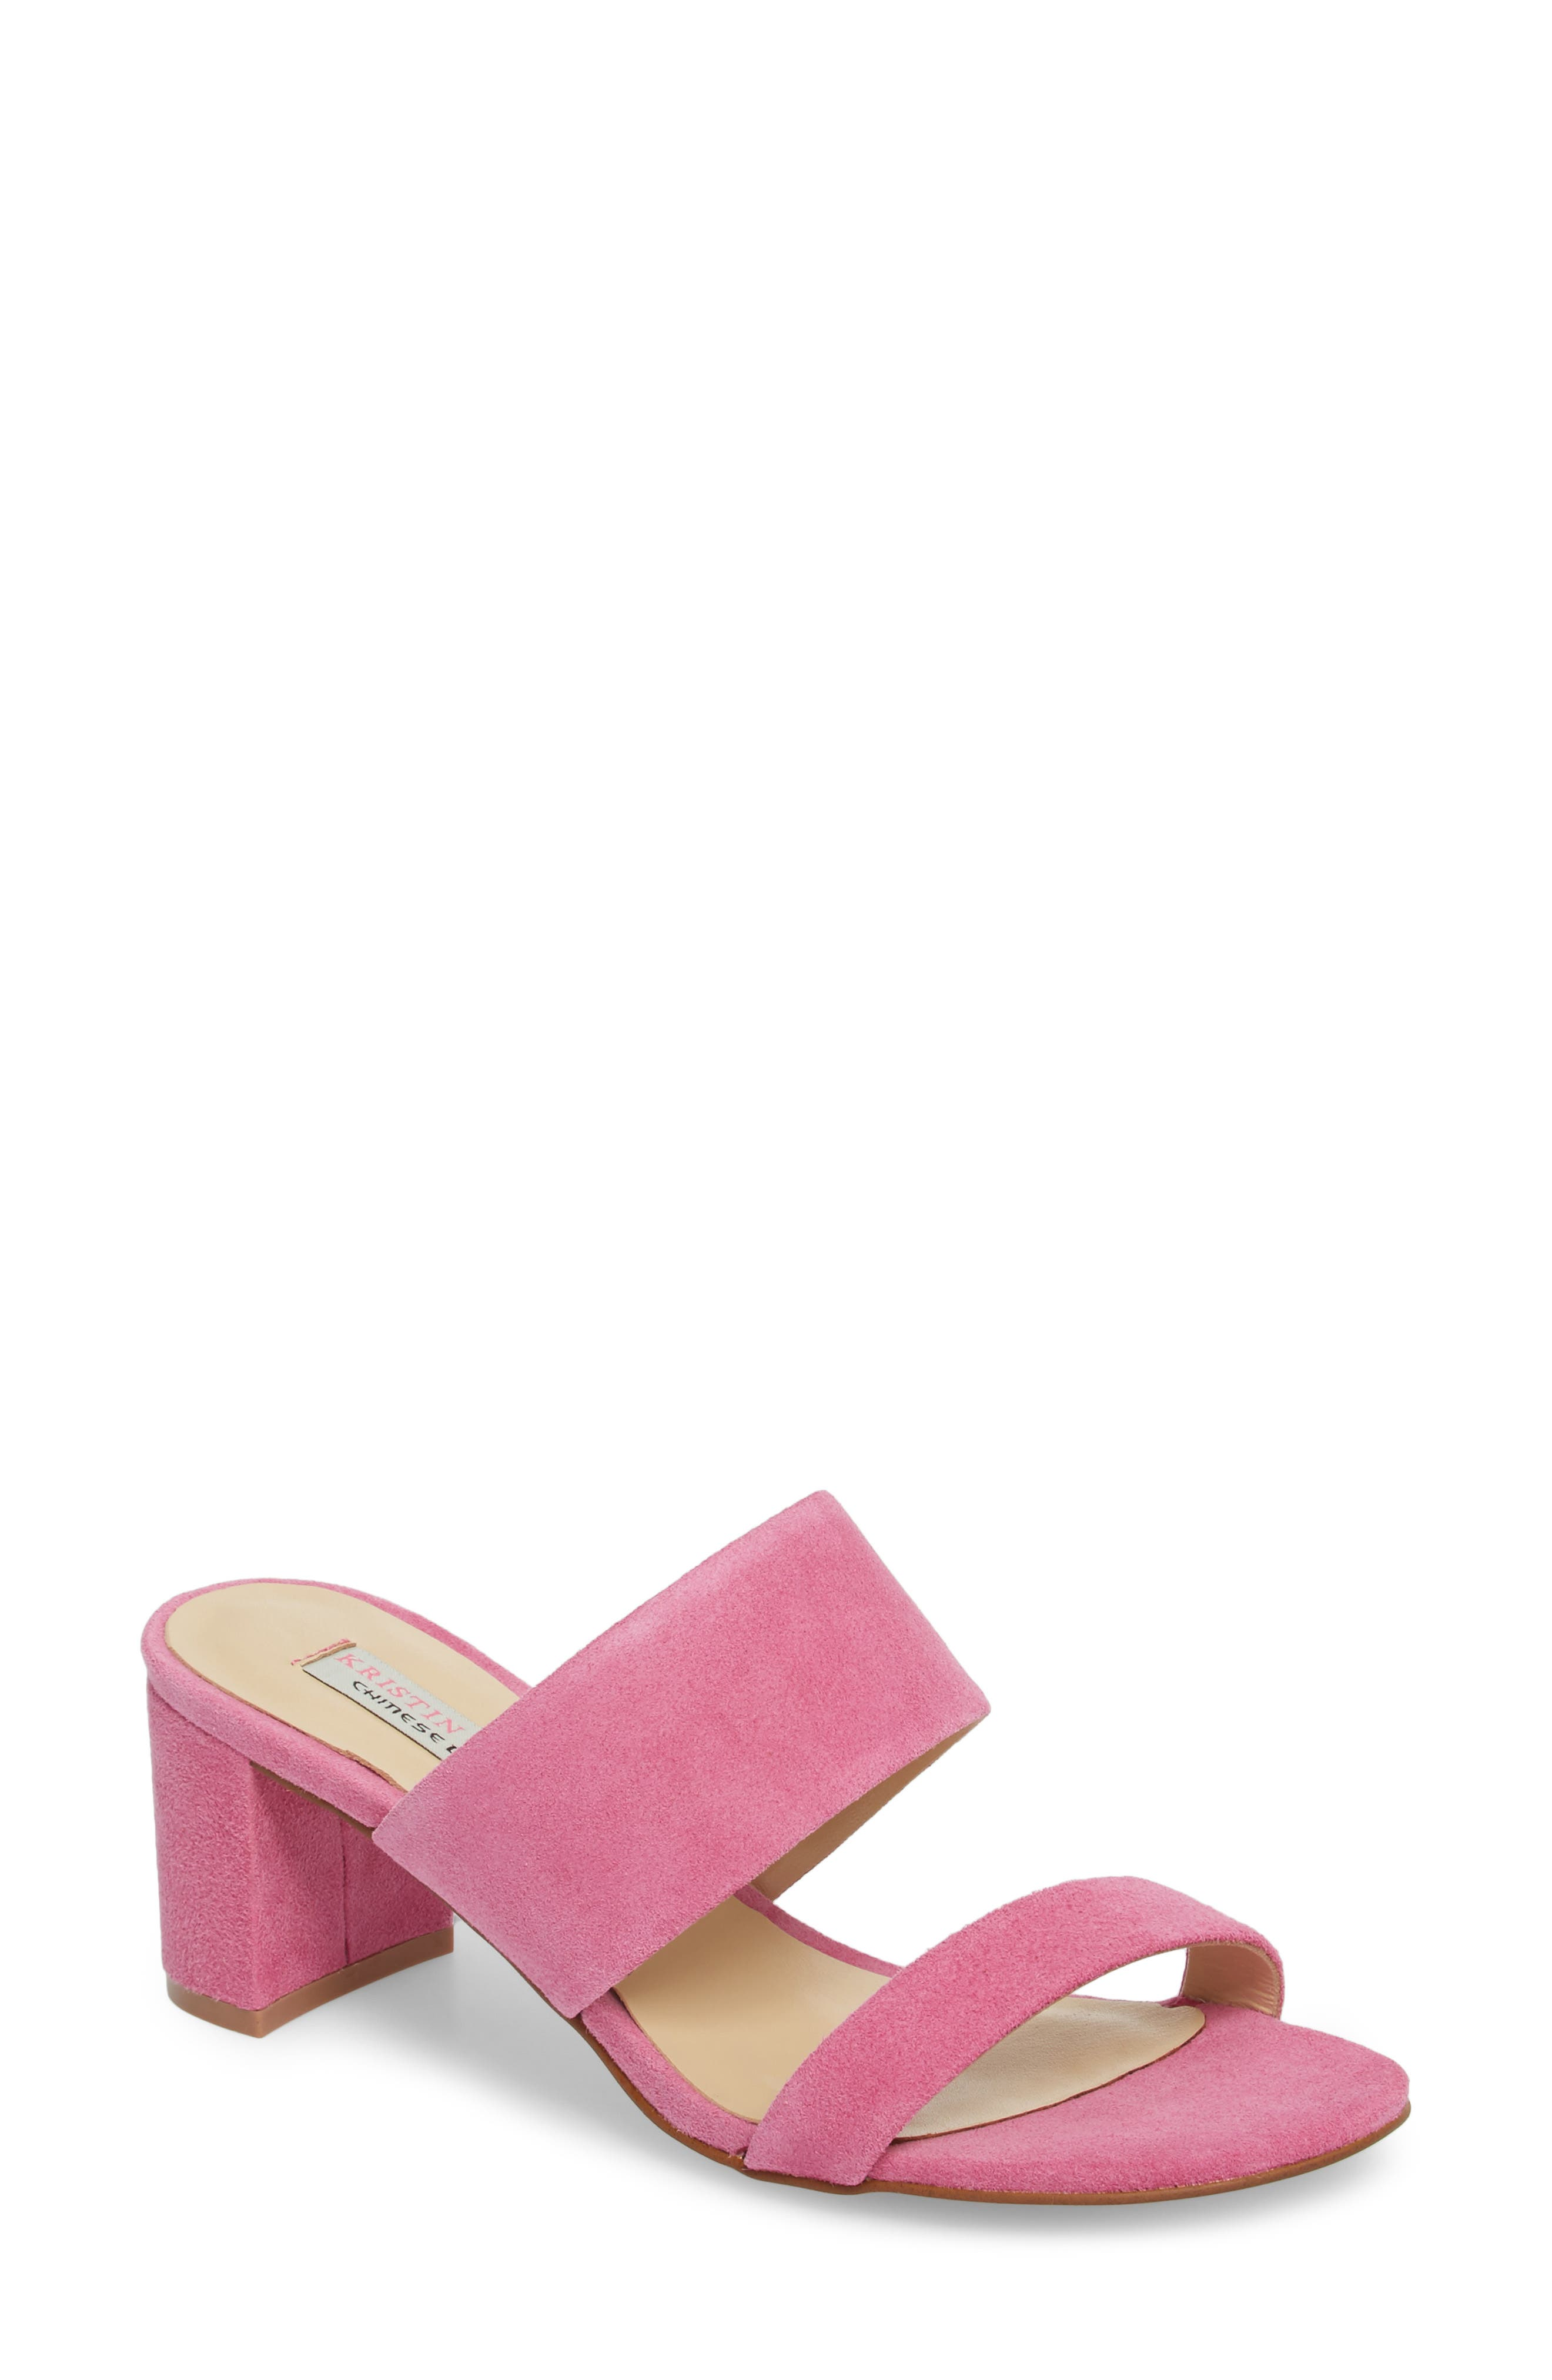 Lakeview Sandal,                         Main,                         color, Fuchsia Suede